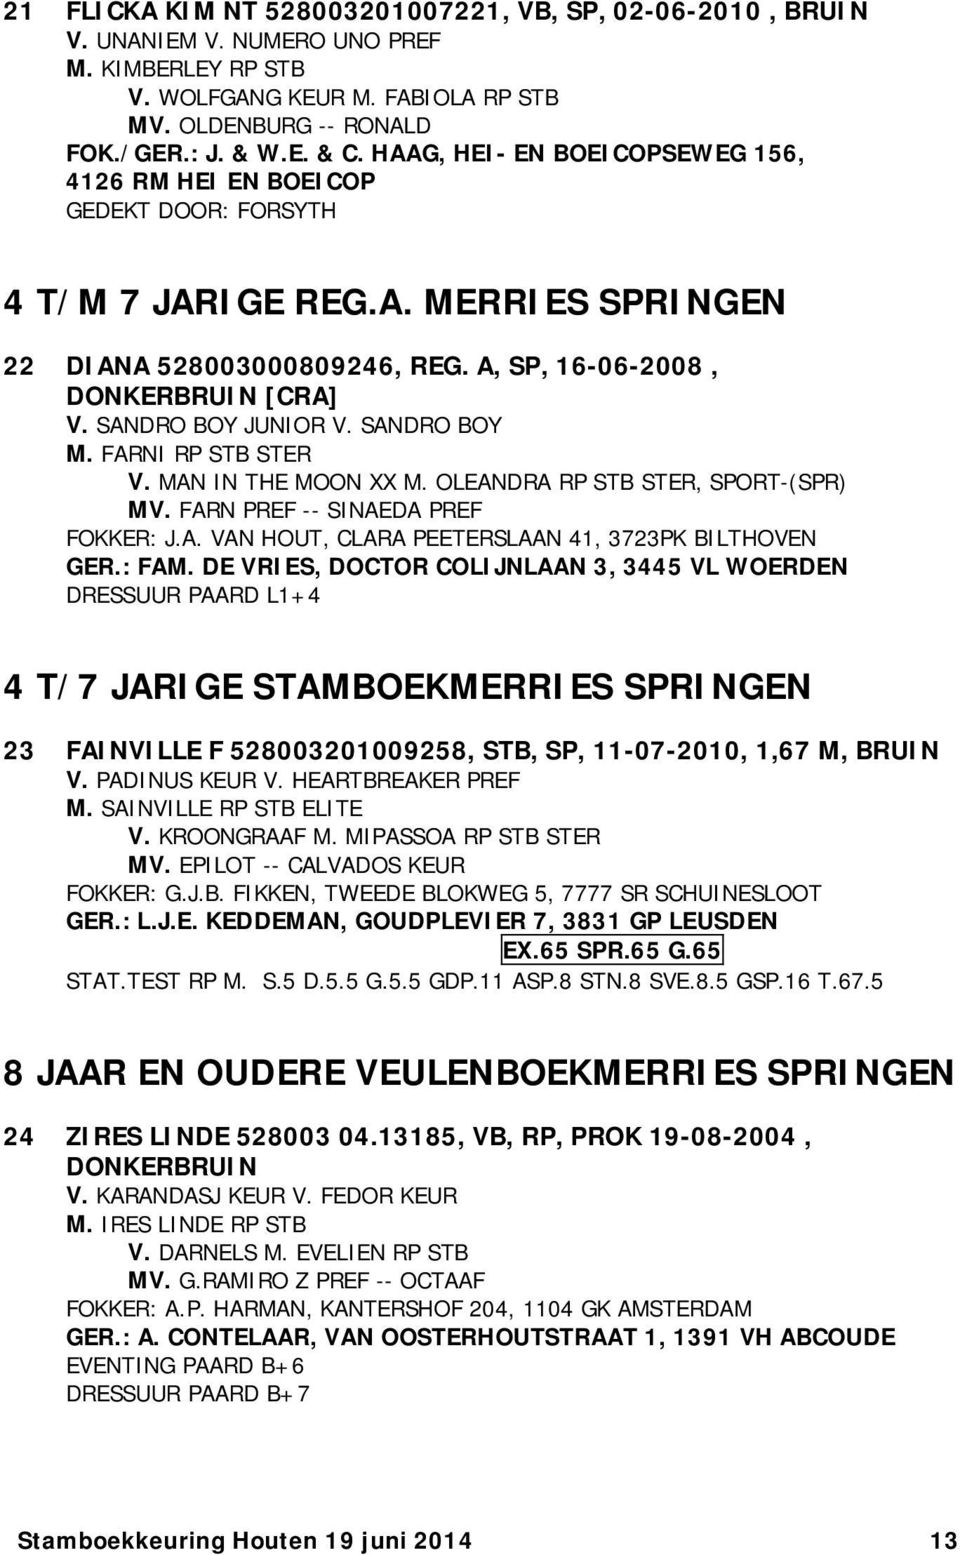 SANDRO BOY JUNIOR V. SANDRO BOY M. FARNI RP STB STER V. MAN IN THE MOON XX M. OLEANDRA RP STB STER, SPORT-(SPR) MV. FARN PREF -- SINAEDA PREF FOKKER: J.A. VAN HOUT, CLARA PEETERSLAAN 41, 3723PK BILTHOVEN GER.